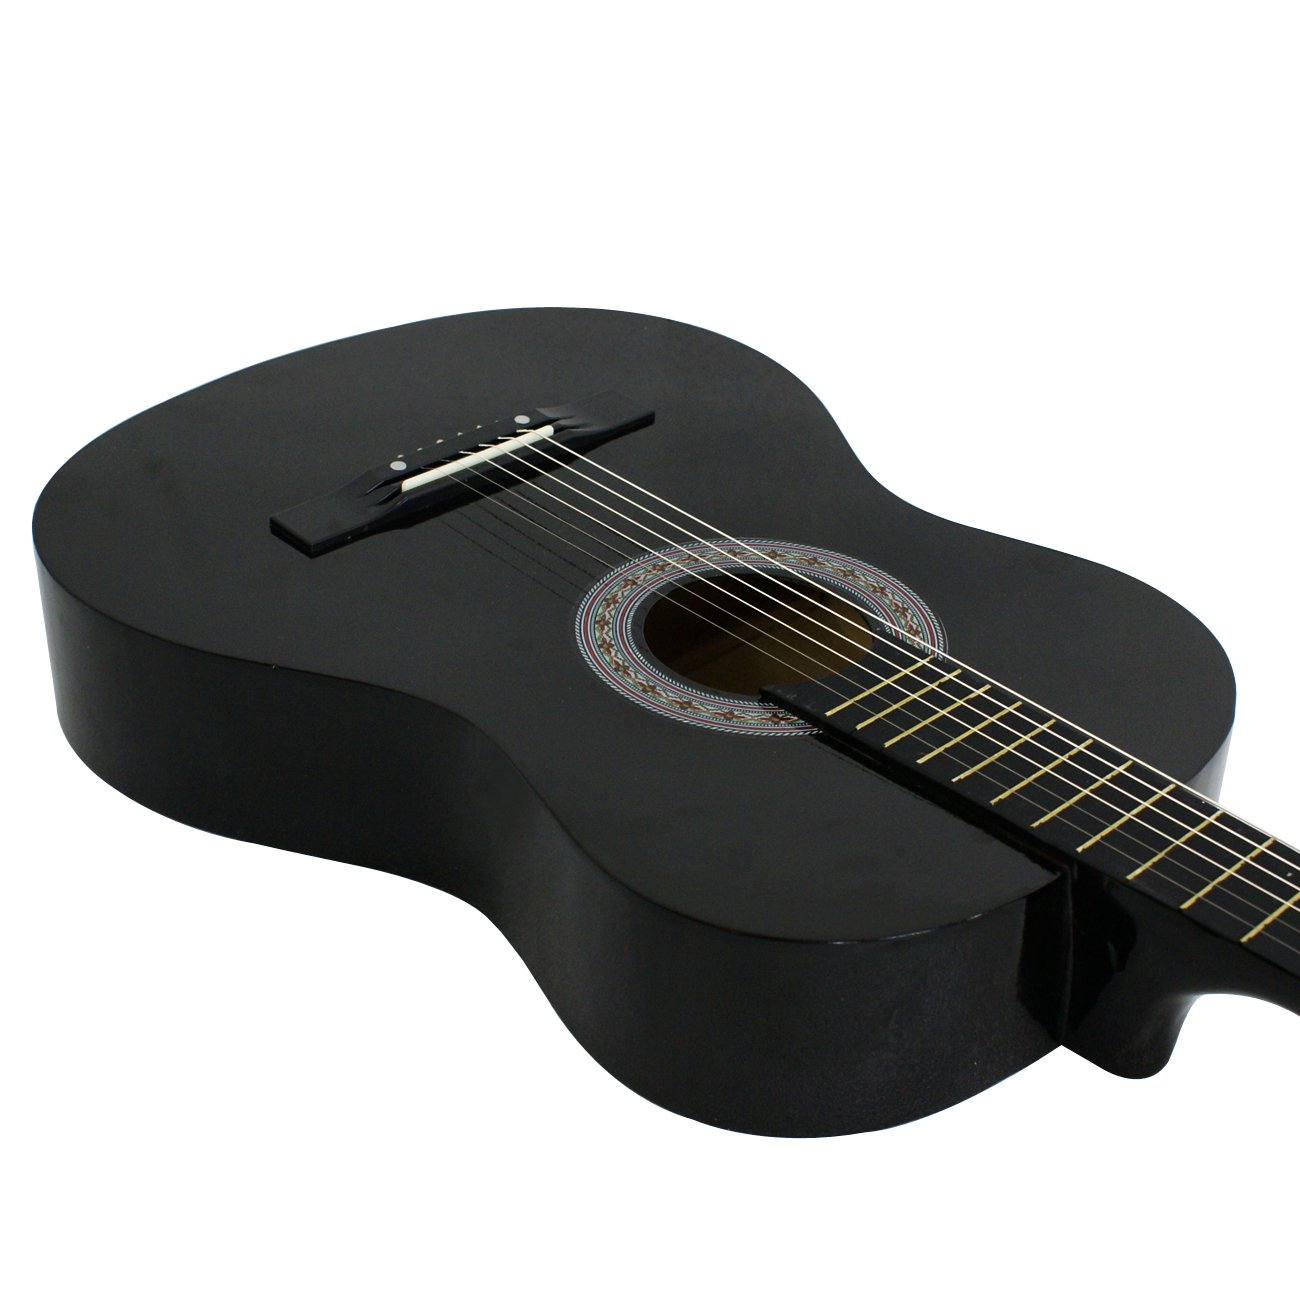 ZENY Beginners 38'' Acoustic Guitar Package Kit for Right-handed Starters Kids Music Lovers w/Case, Strap, Digital E-Tuner, and Pick, Black by ZENY (Image #7)